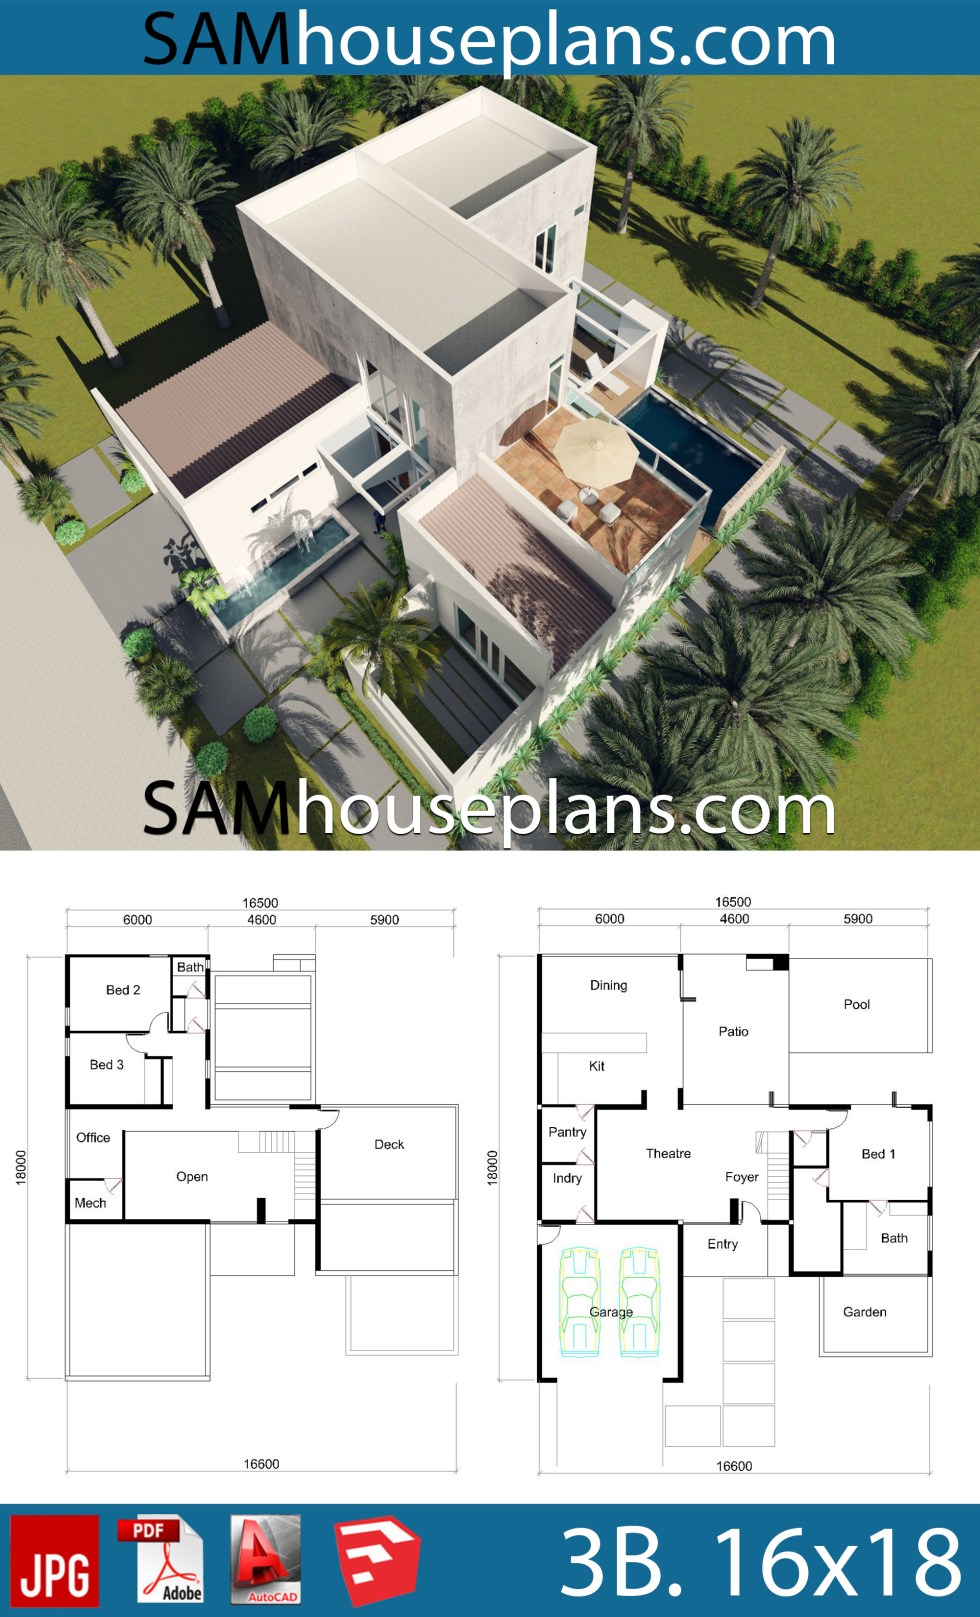 House Plans 16x18 with 3 Bedrooms